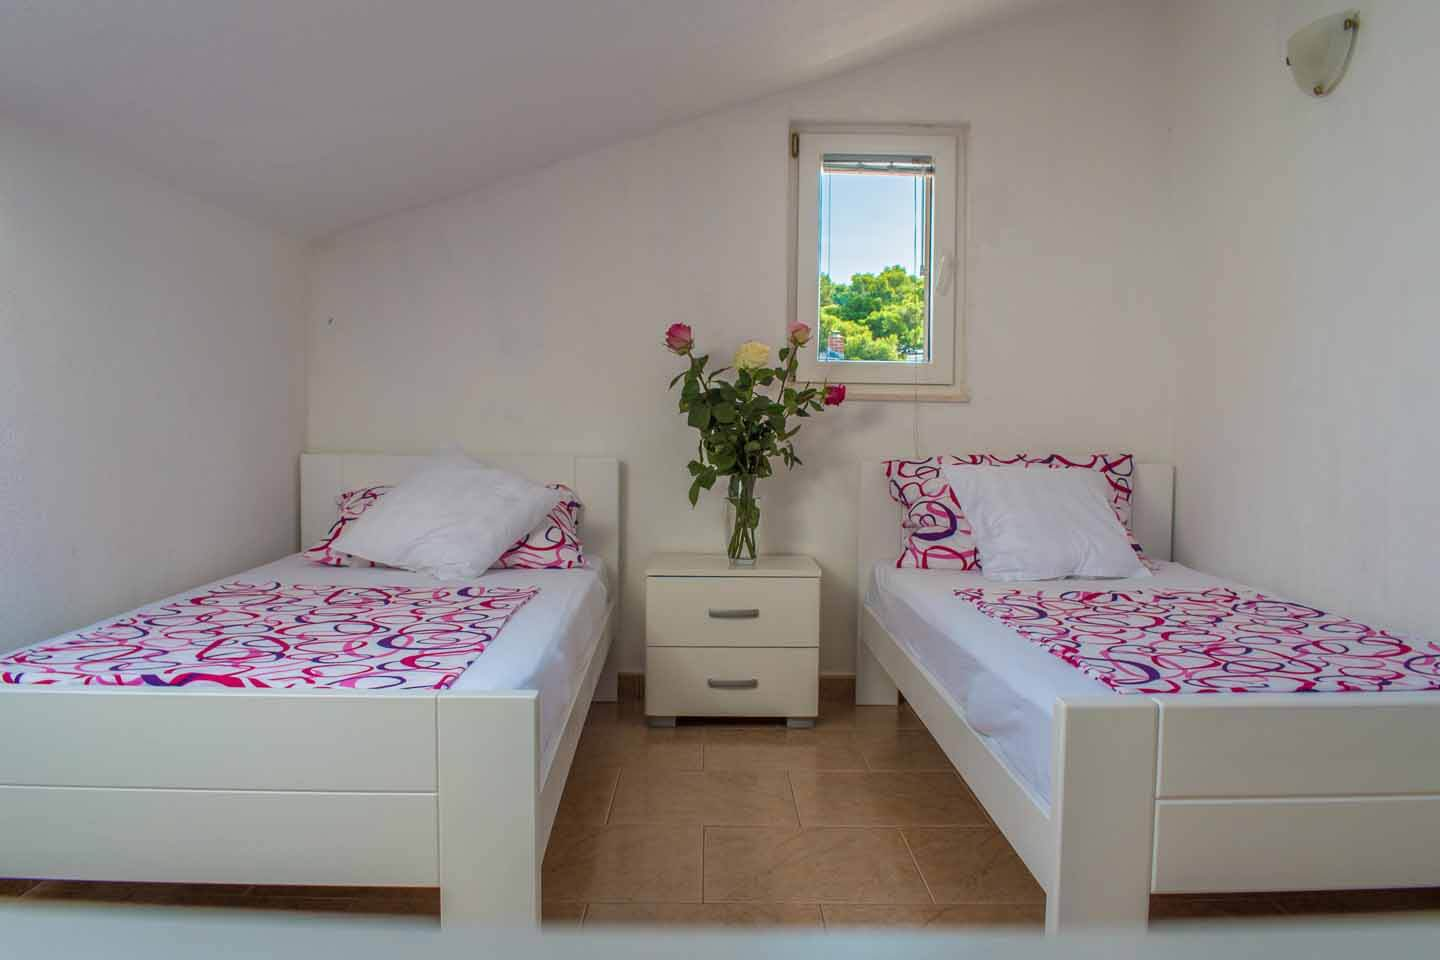 Bedroom 1 with twin beds